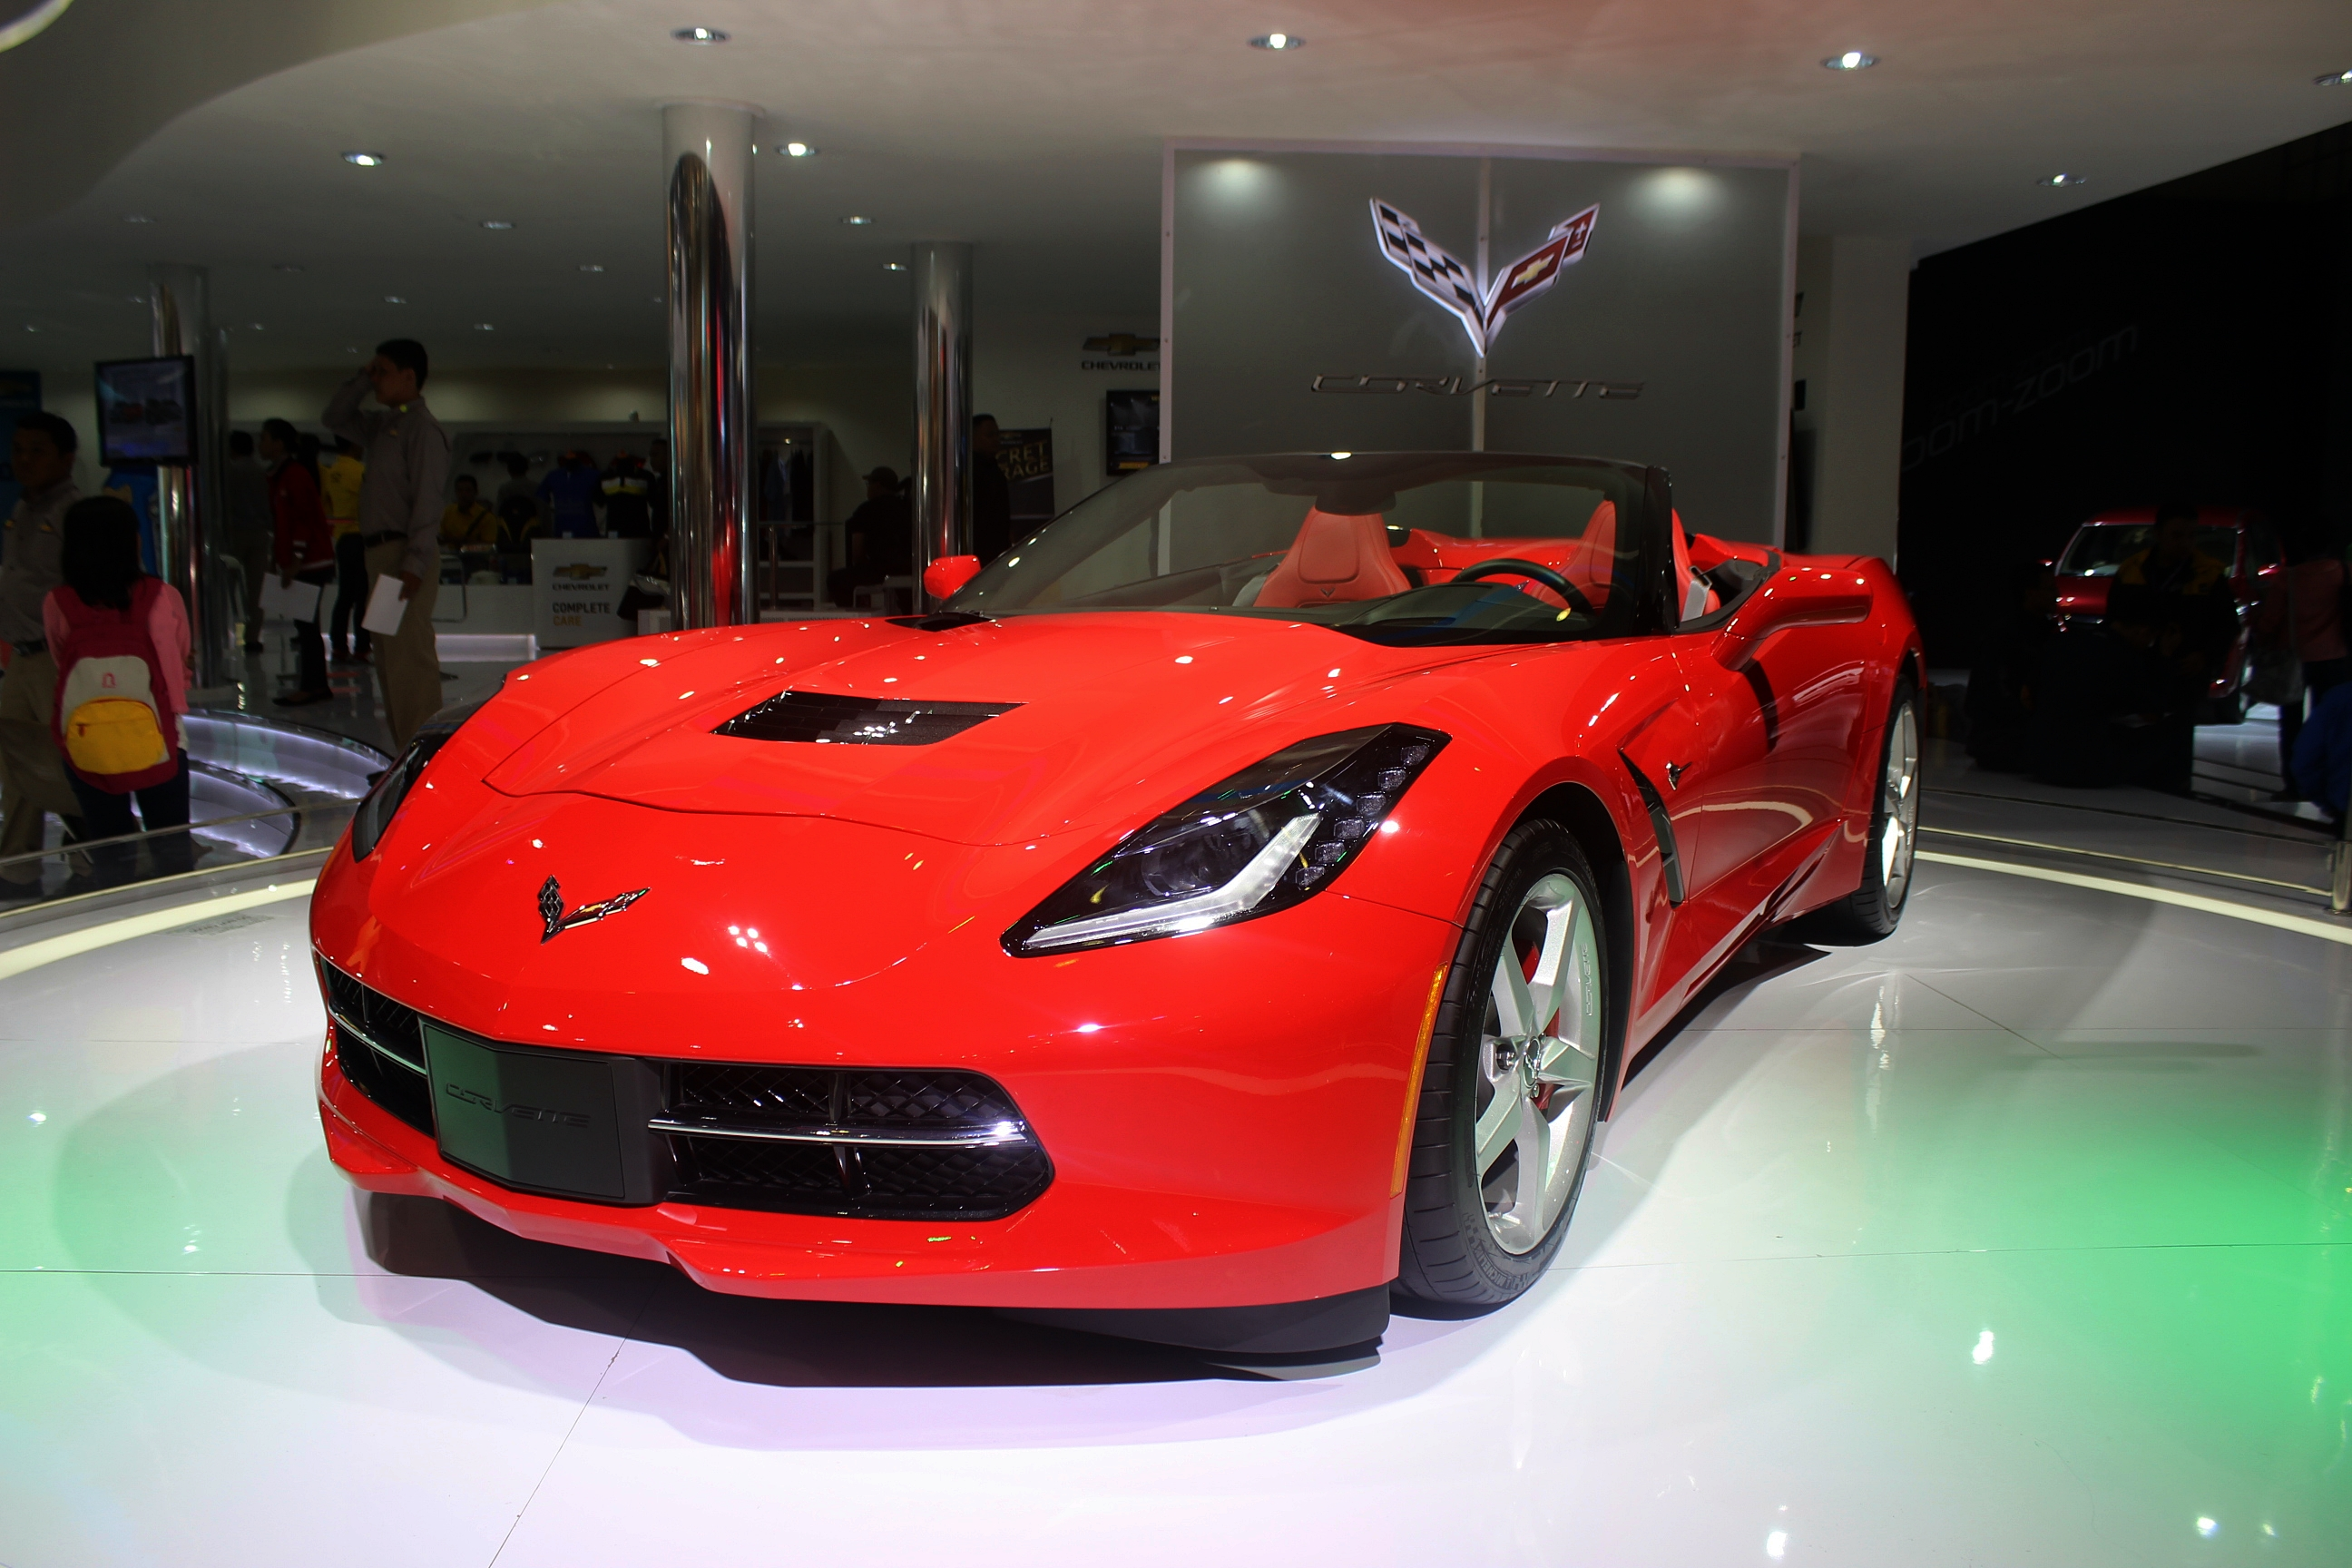 File:Chevrolet Corvette C7 Stingray Convertible   Indonesia International  Motor Show 2014   September 27